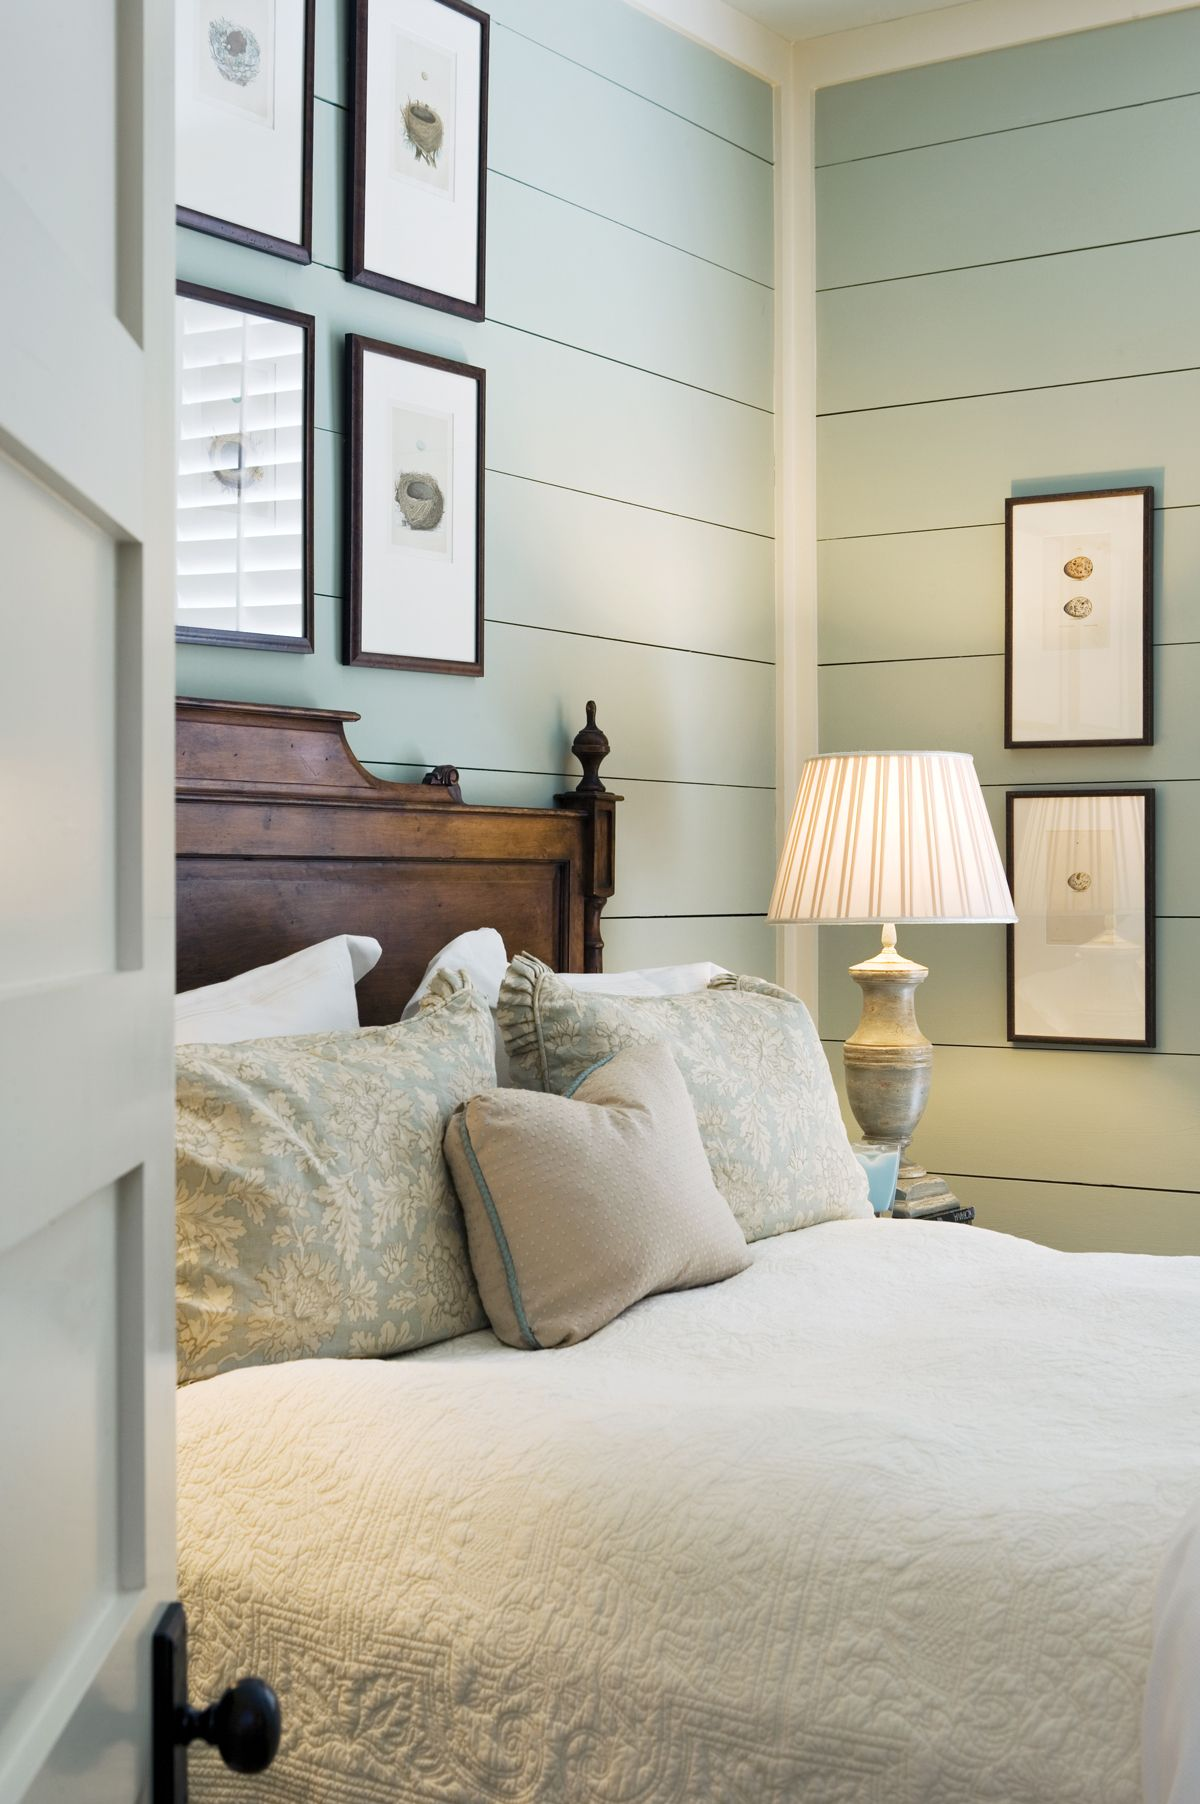 Transform your walls with shiplap! Use your favorite